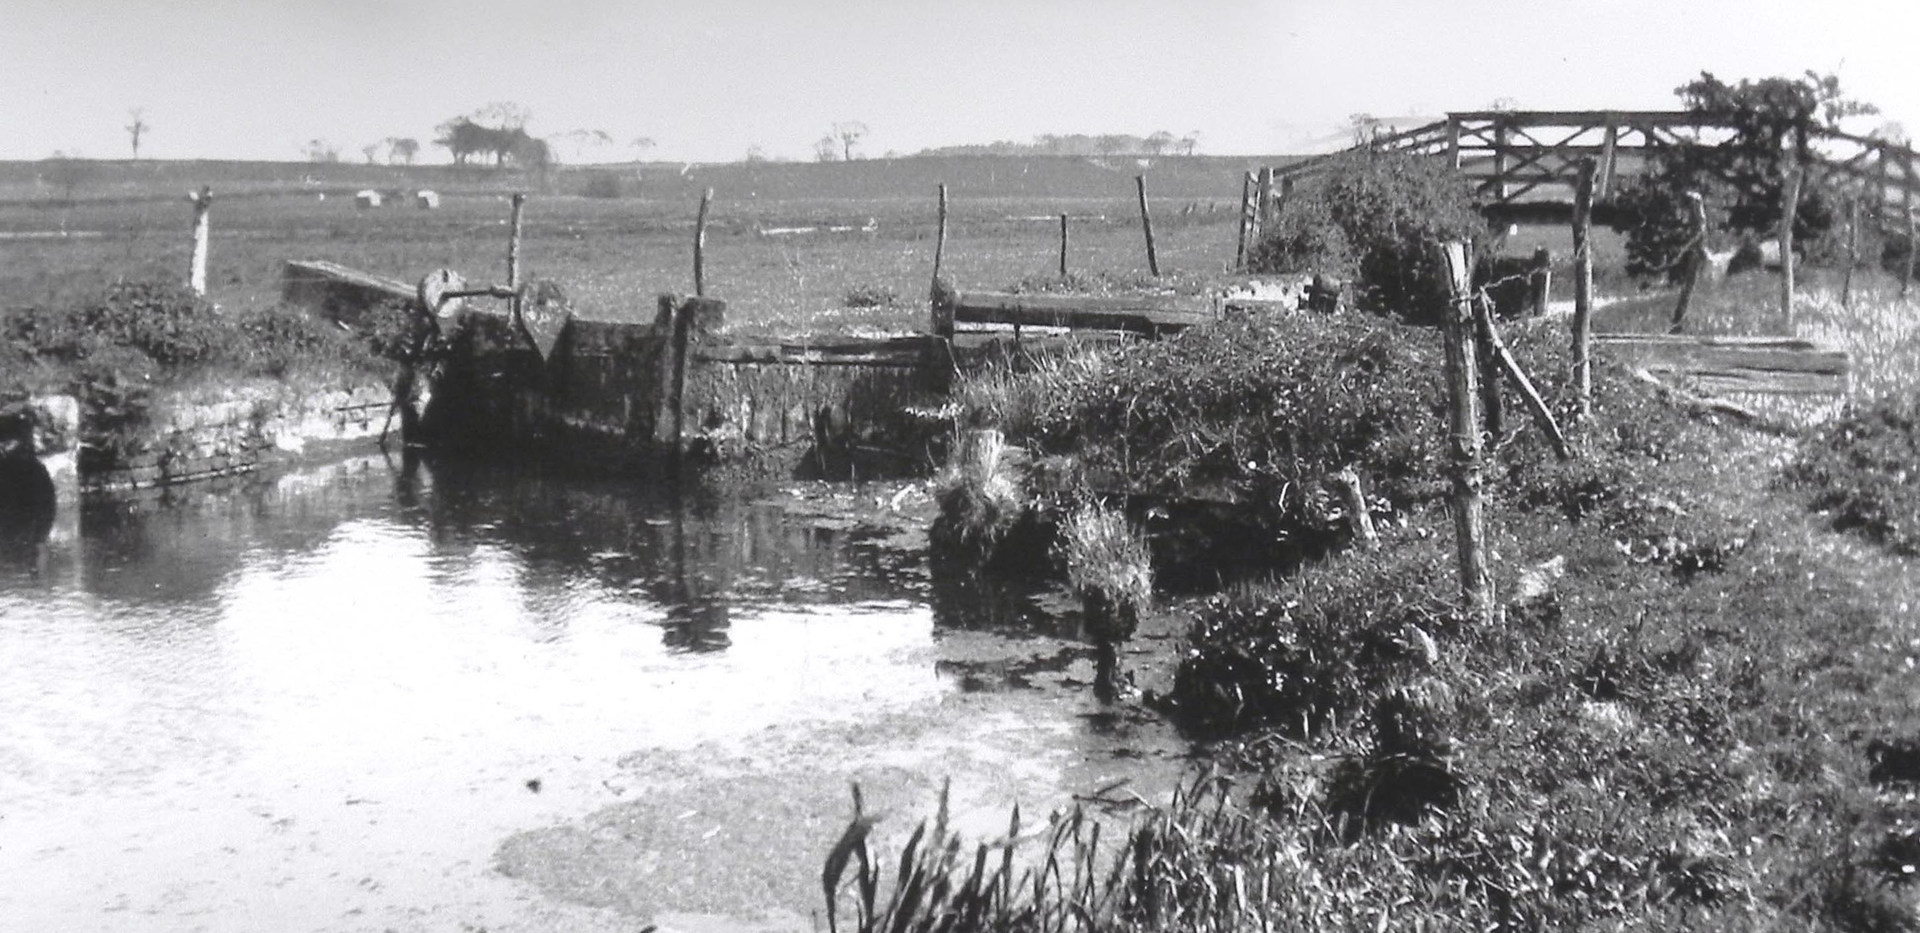 Burgh Lock after the 1912 flood